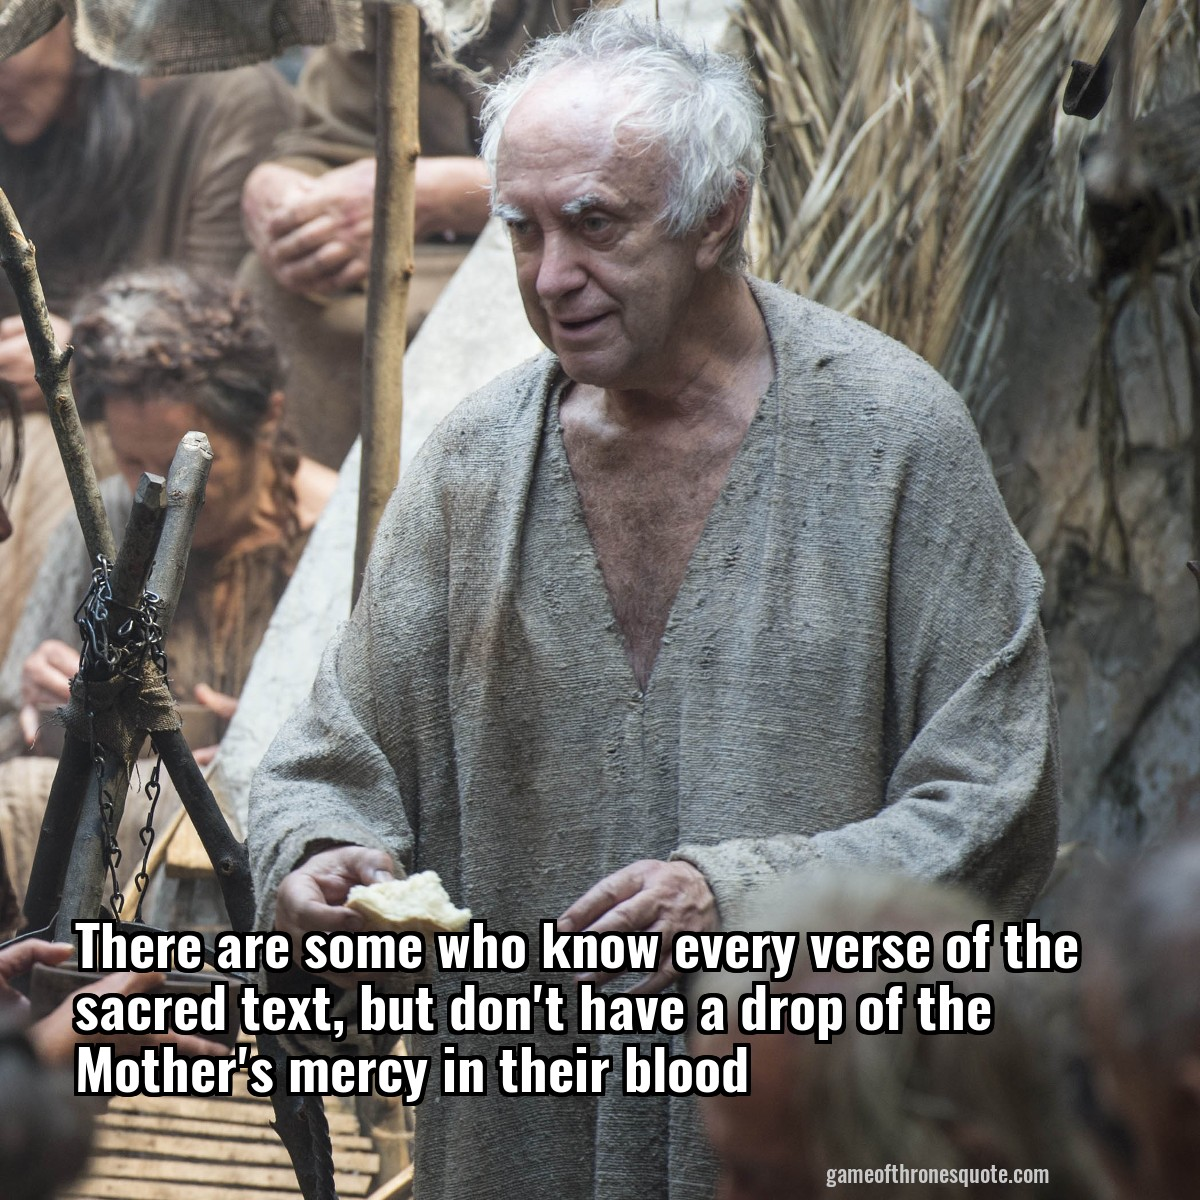 There are some who know every verse of the sacred text, but don't have a drop of the Mother's mercy in their blood